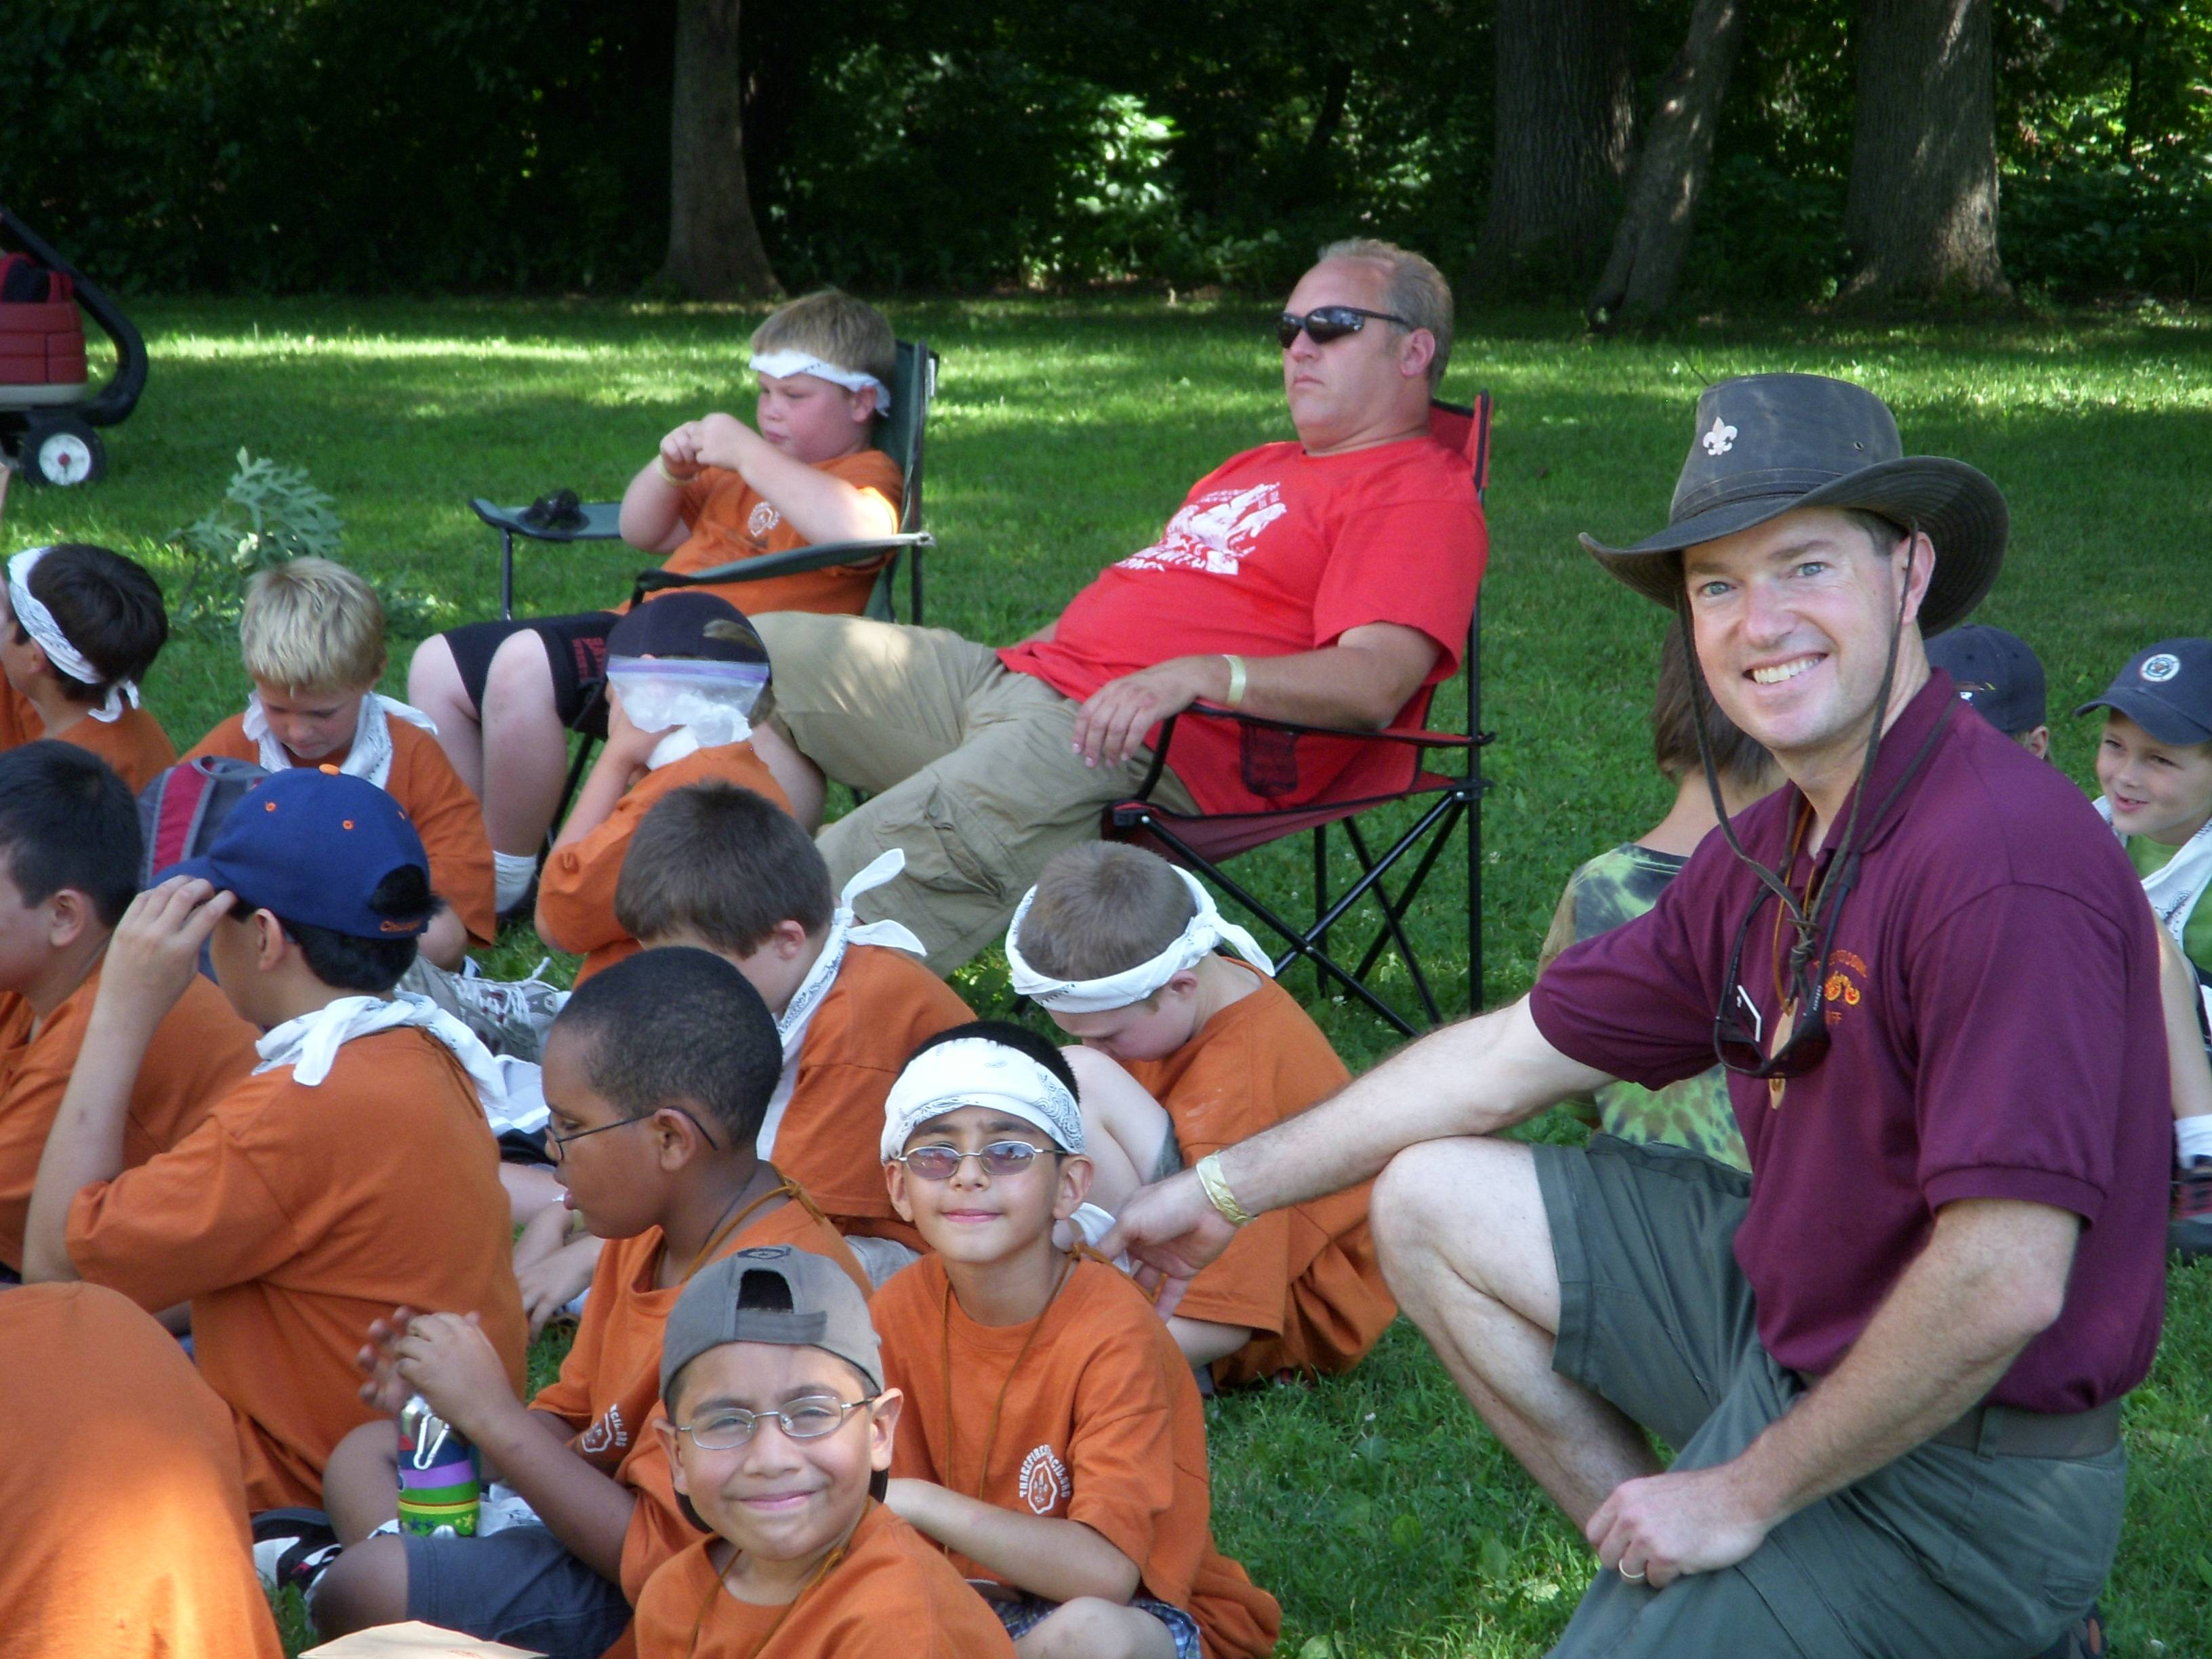 Fox Valley District Execuitve, Wes Weems with Cub Scouts at Day Camp